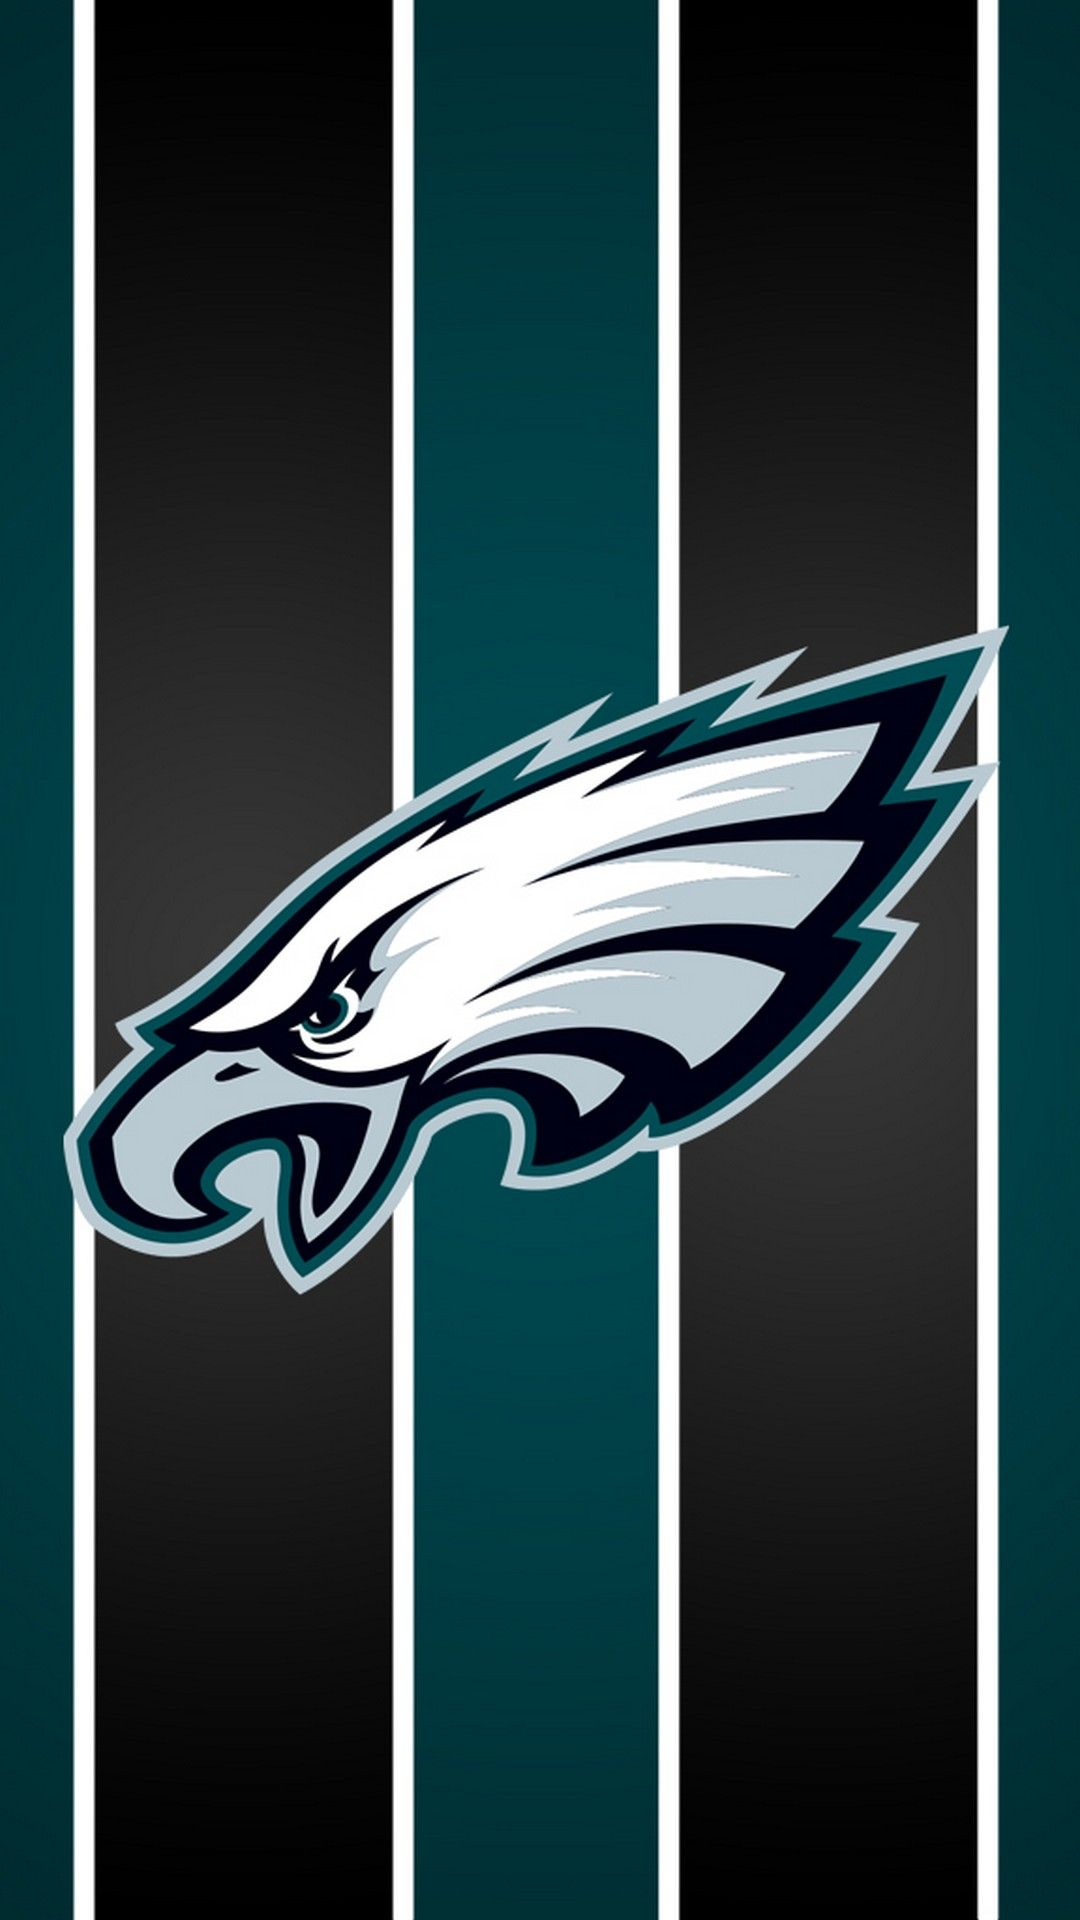 Eagles Football Hd Wallpaper For Iphone 2020 Nfl Football Wallpapers Nfl Football Wallpaper Philadelphia Eagles Colors Eagles Football